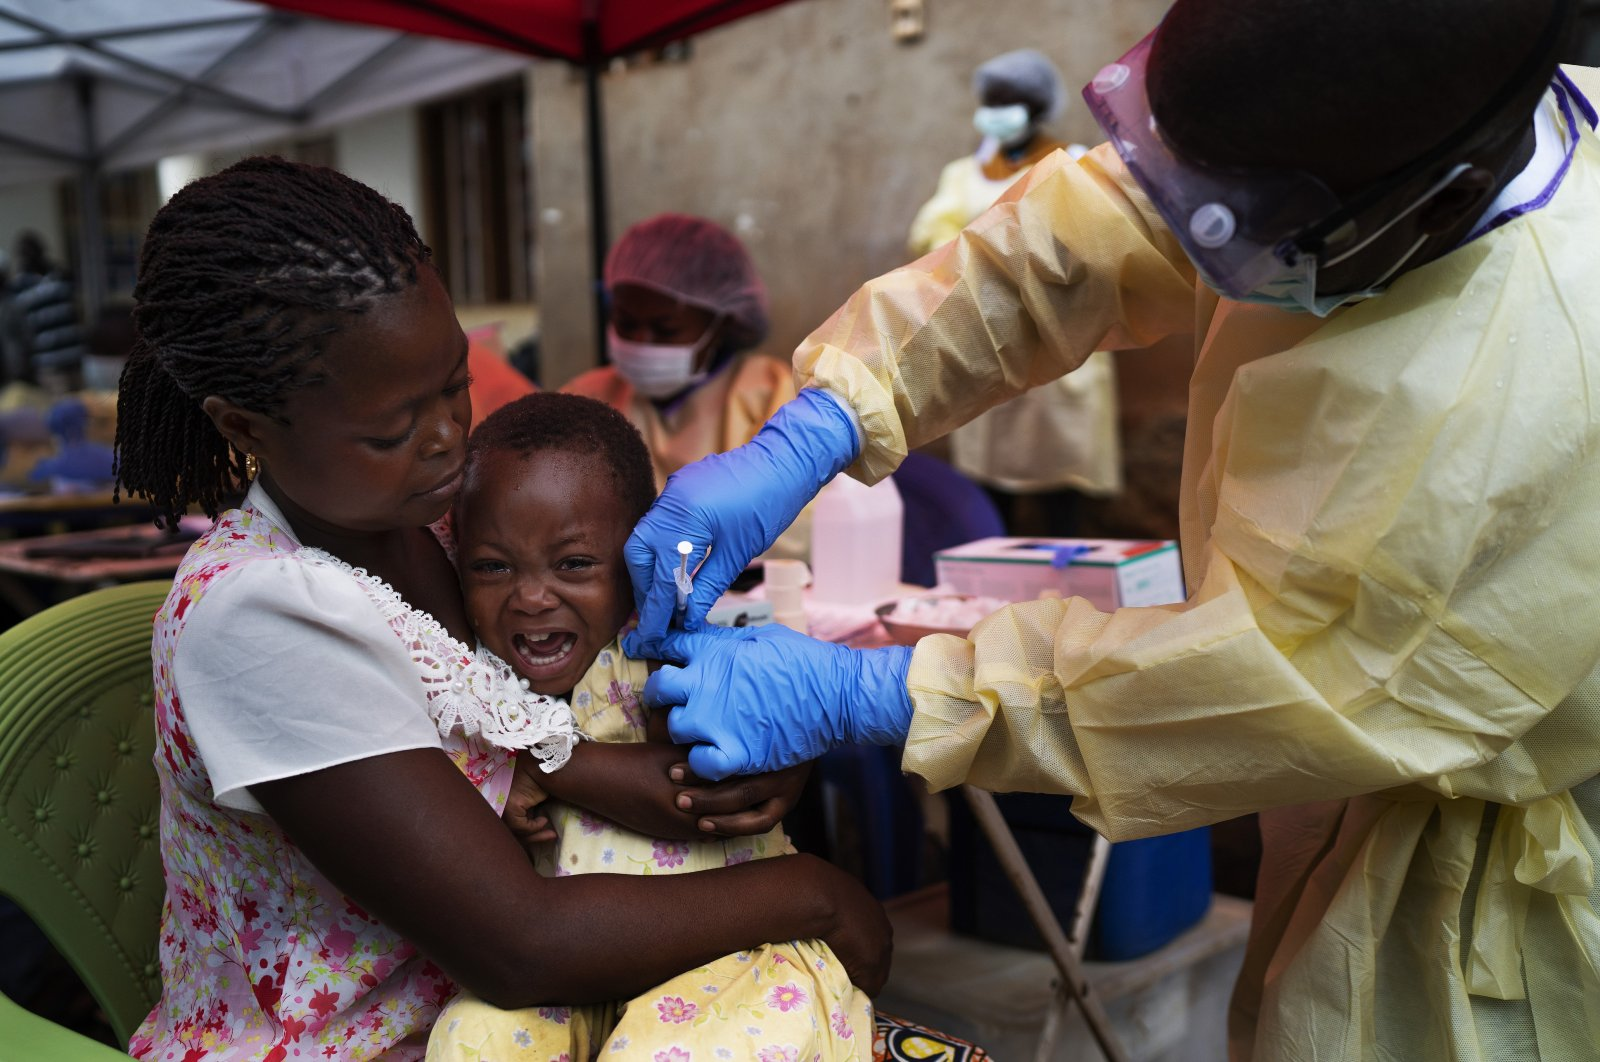 A child is vaccinated against Ebola in Beni, Democratic Republic of Congo, July 13, 2019. (AP Photo)